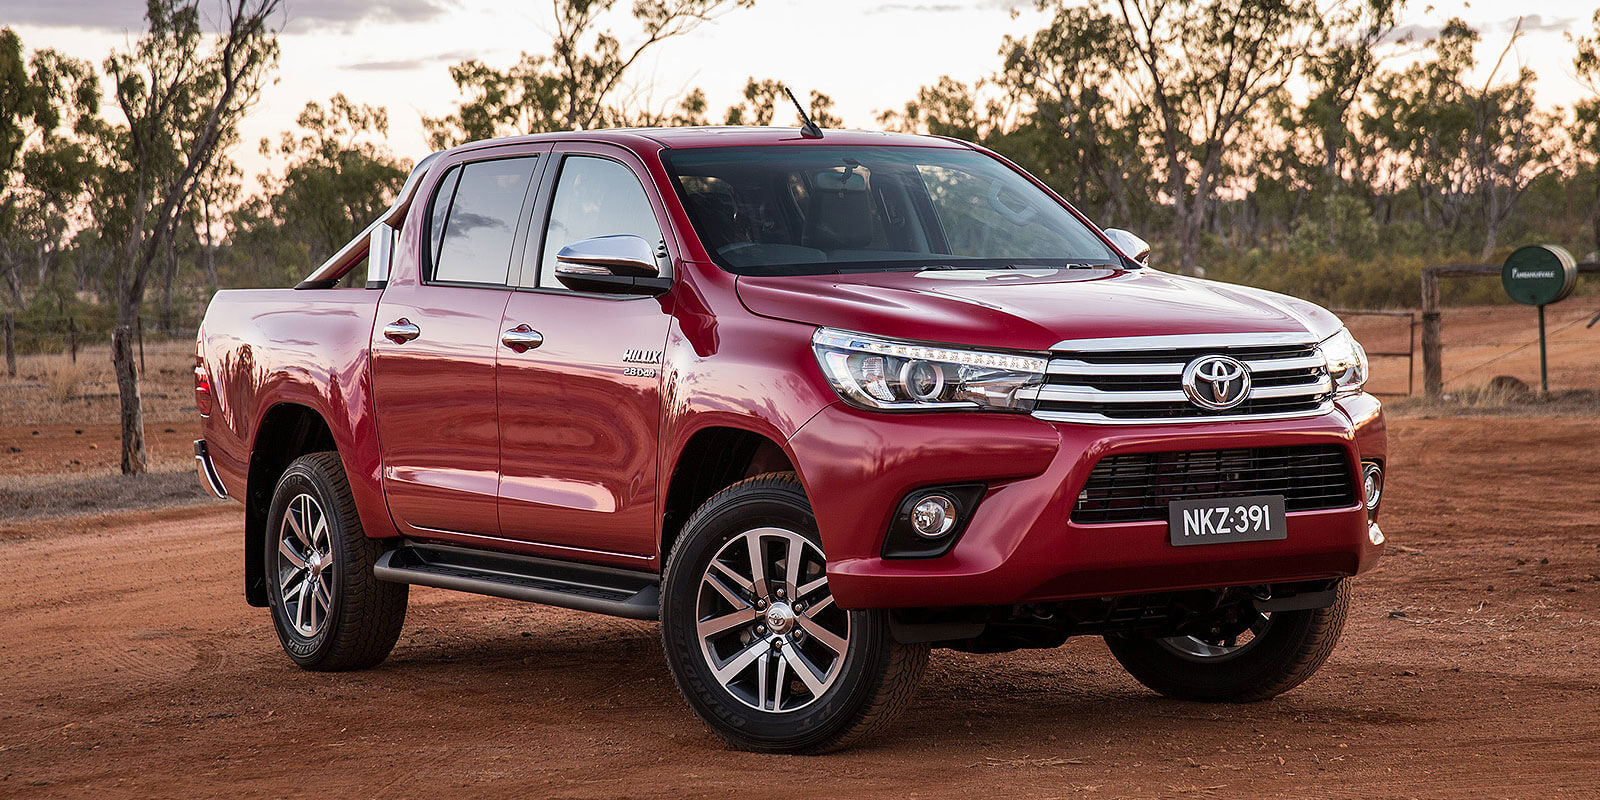 Frontrunner: Toyota points to favourable economic conditions and vigorous competition as reasons behind the strong new-vehicle market overall, typified by its top-selling HiLux.